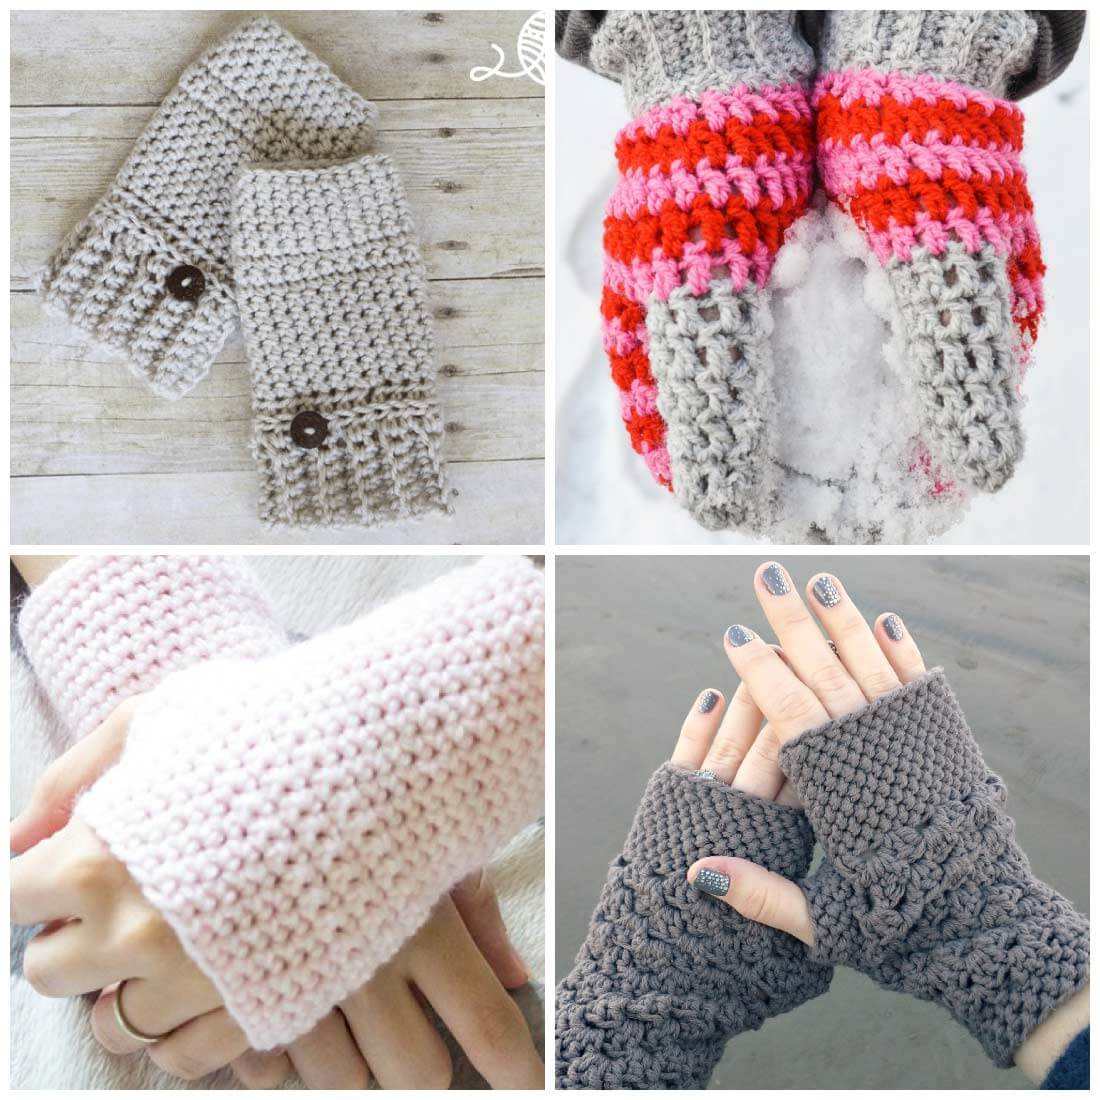 crochet fingerless gloves fingerless gloves crochet pattern | crochet mittens | crochet gloves | free krfpiqt